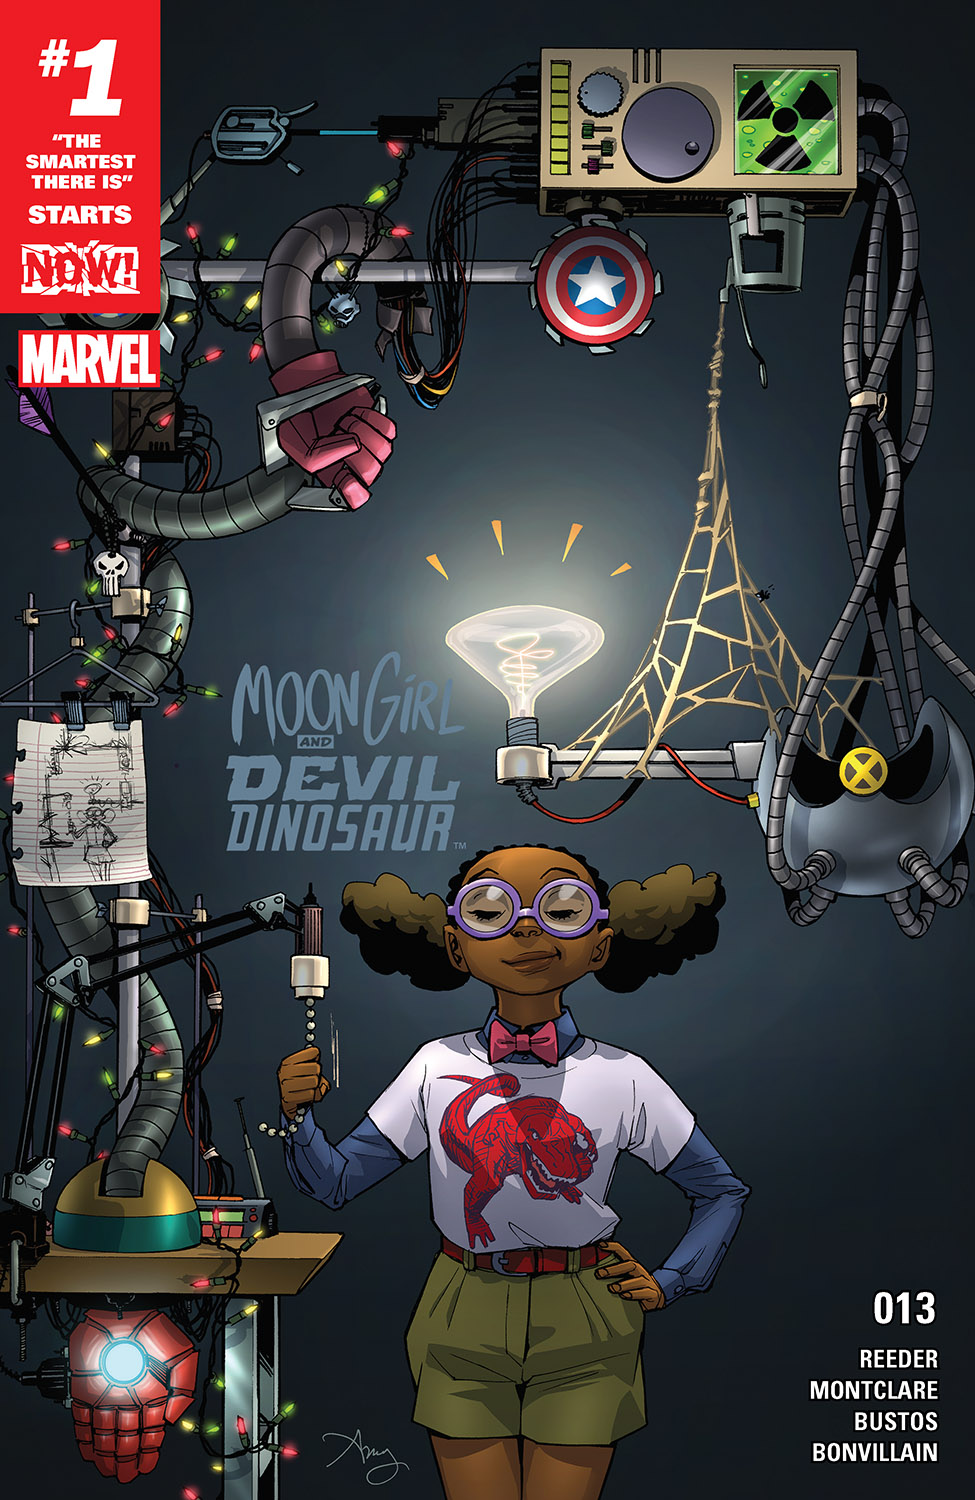 Moon Girl and Devil Dinosaur (2015) #13